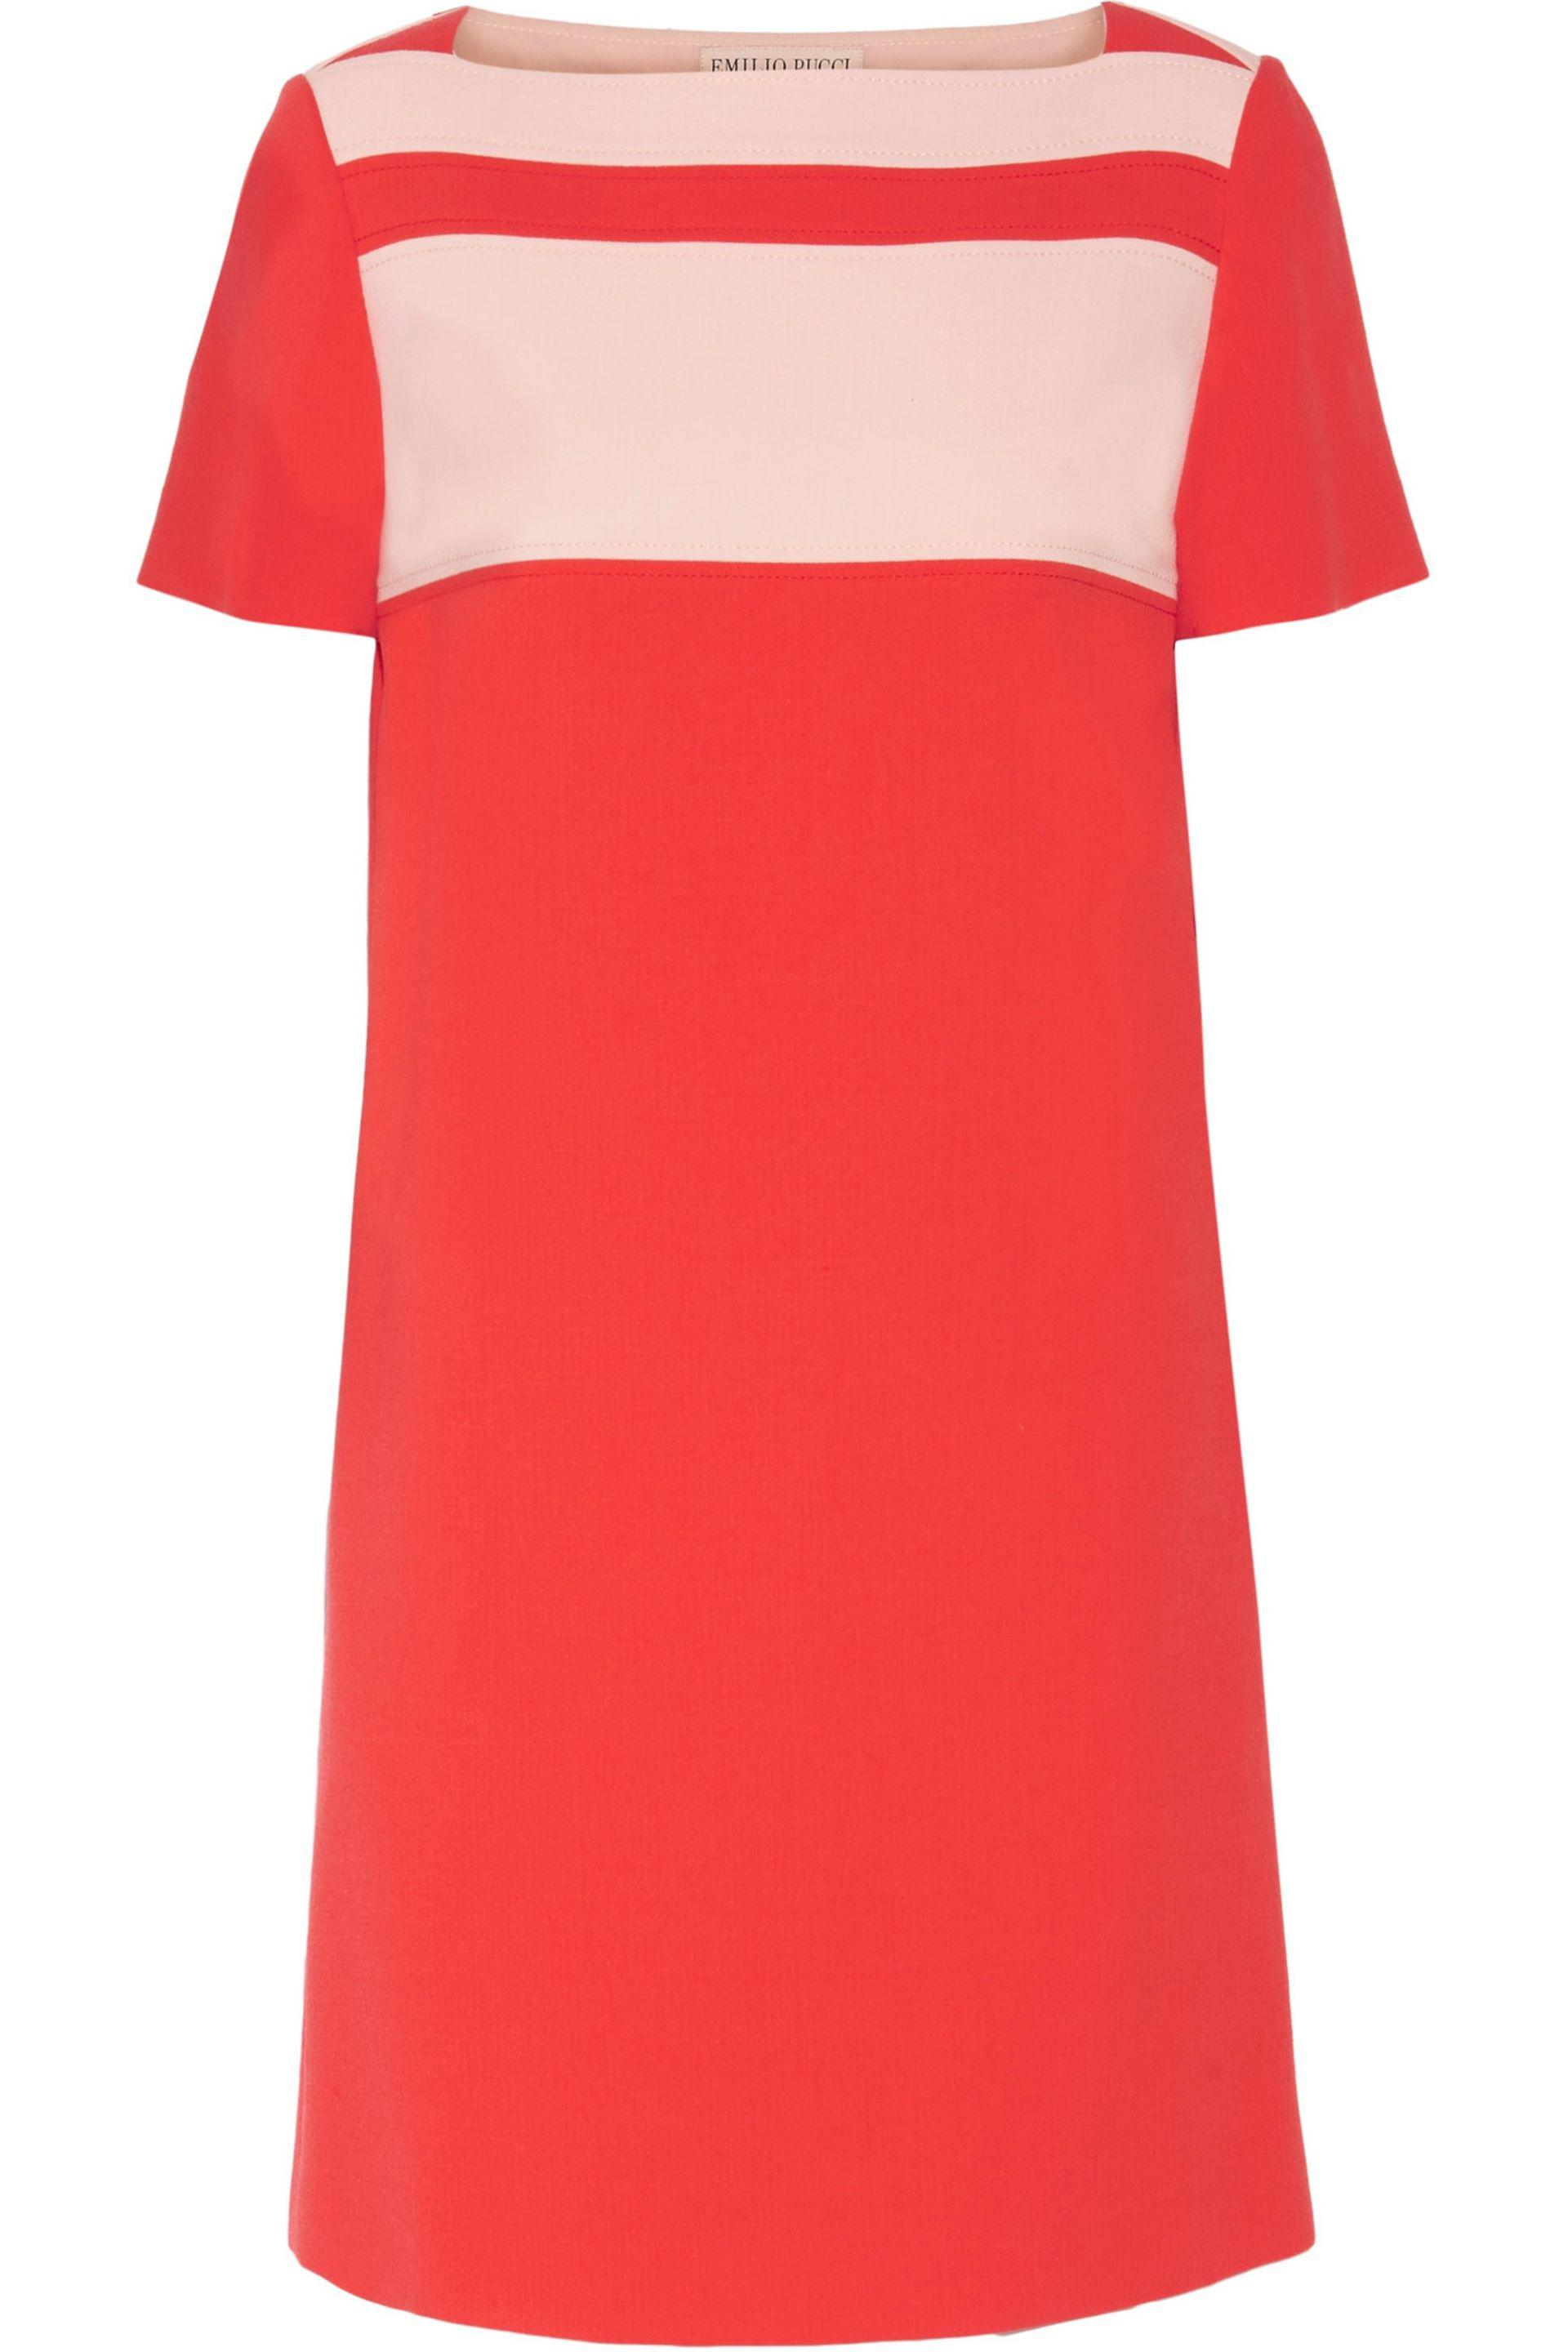 Emilio Pucci. Women's Red Two-tone Paneled Wool-blend Crepe Mini Dress